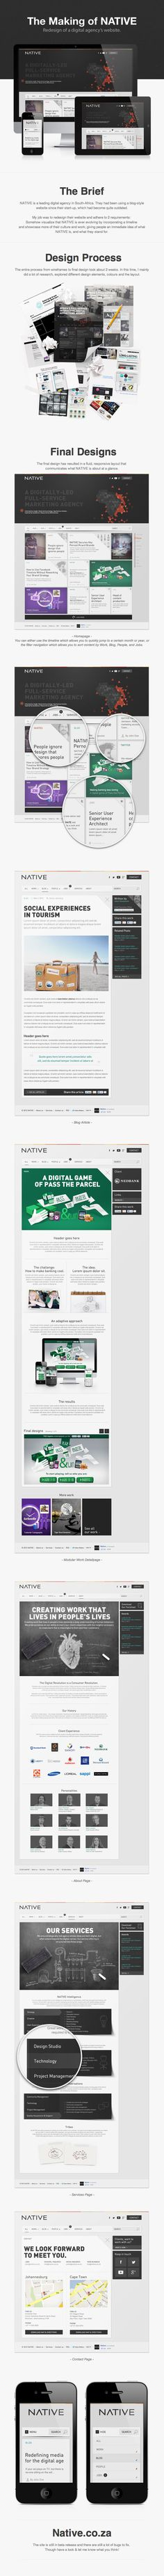 Redesign of a digital agency's website by Nelleke van der Maas, via Behance